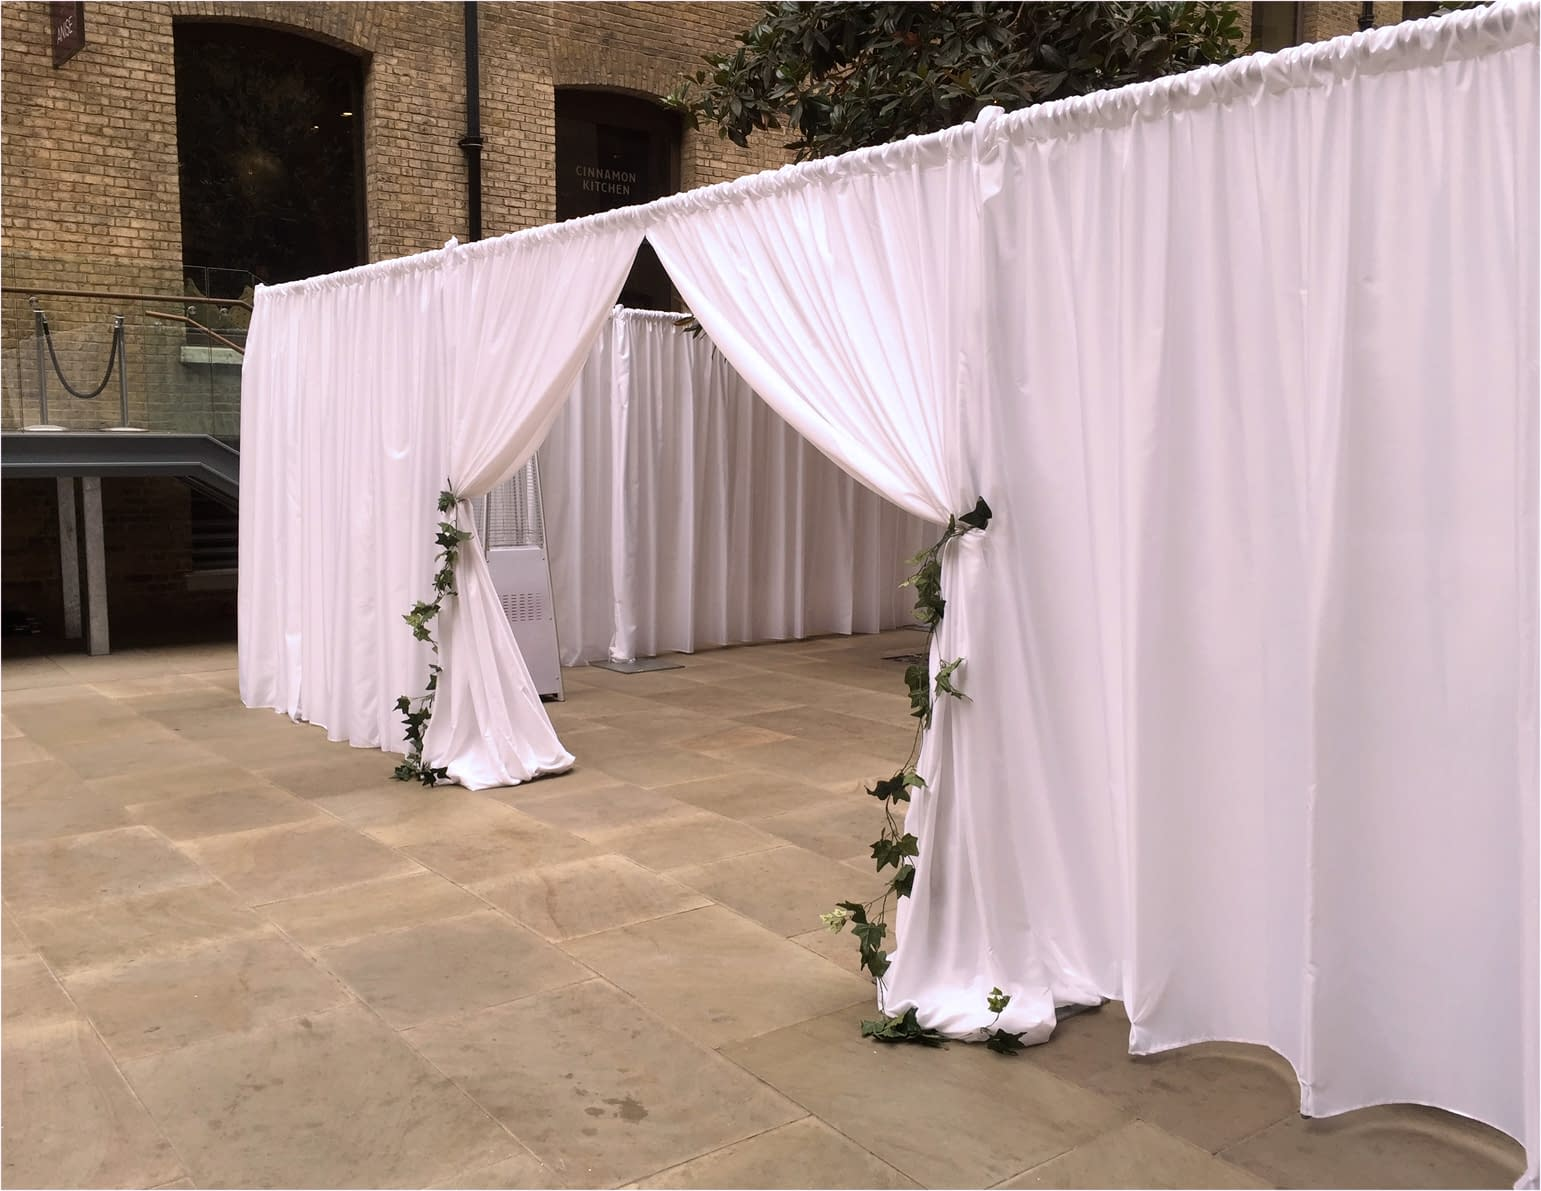 Devonshire Terrace white partition drape finished with ivy ties